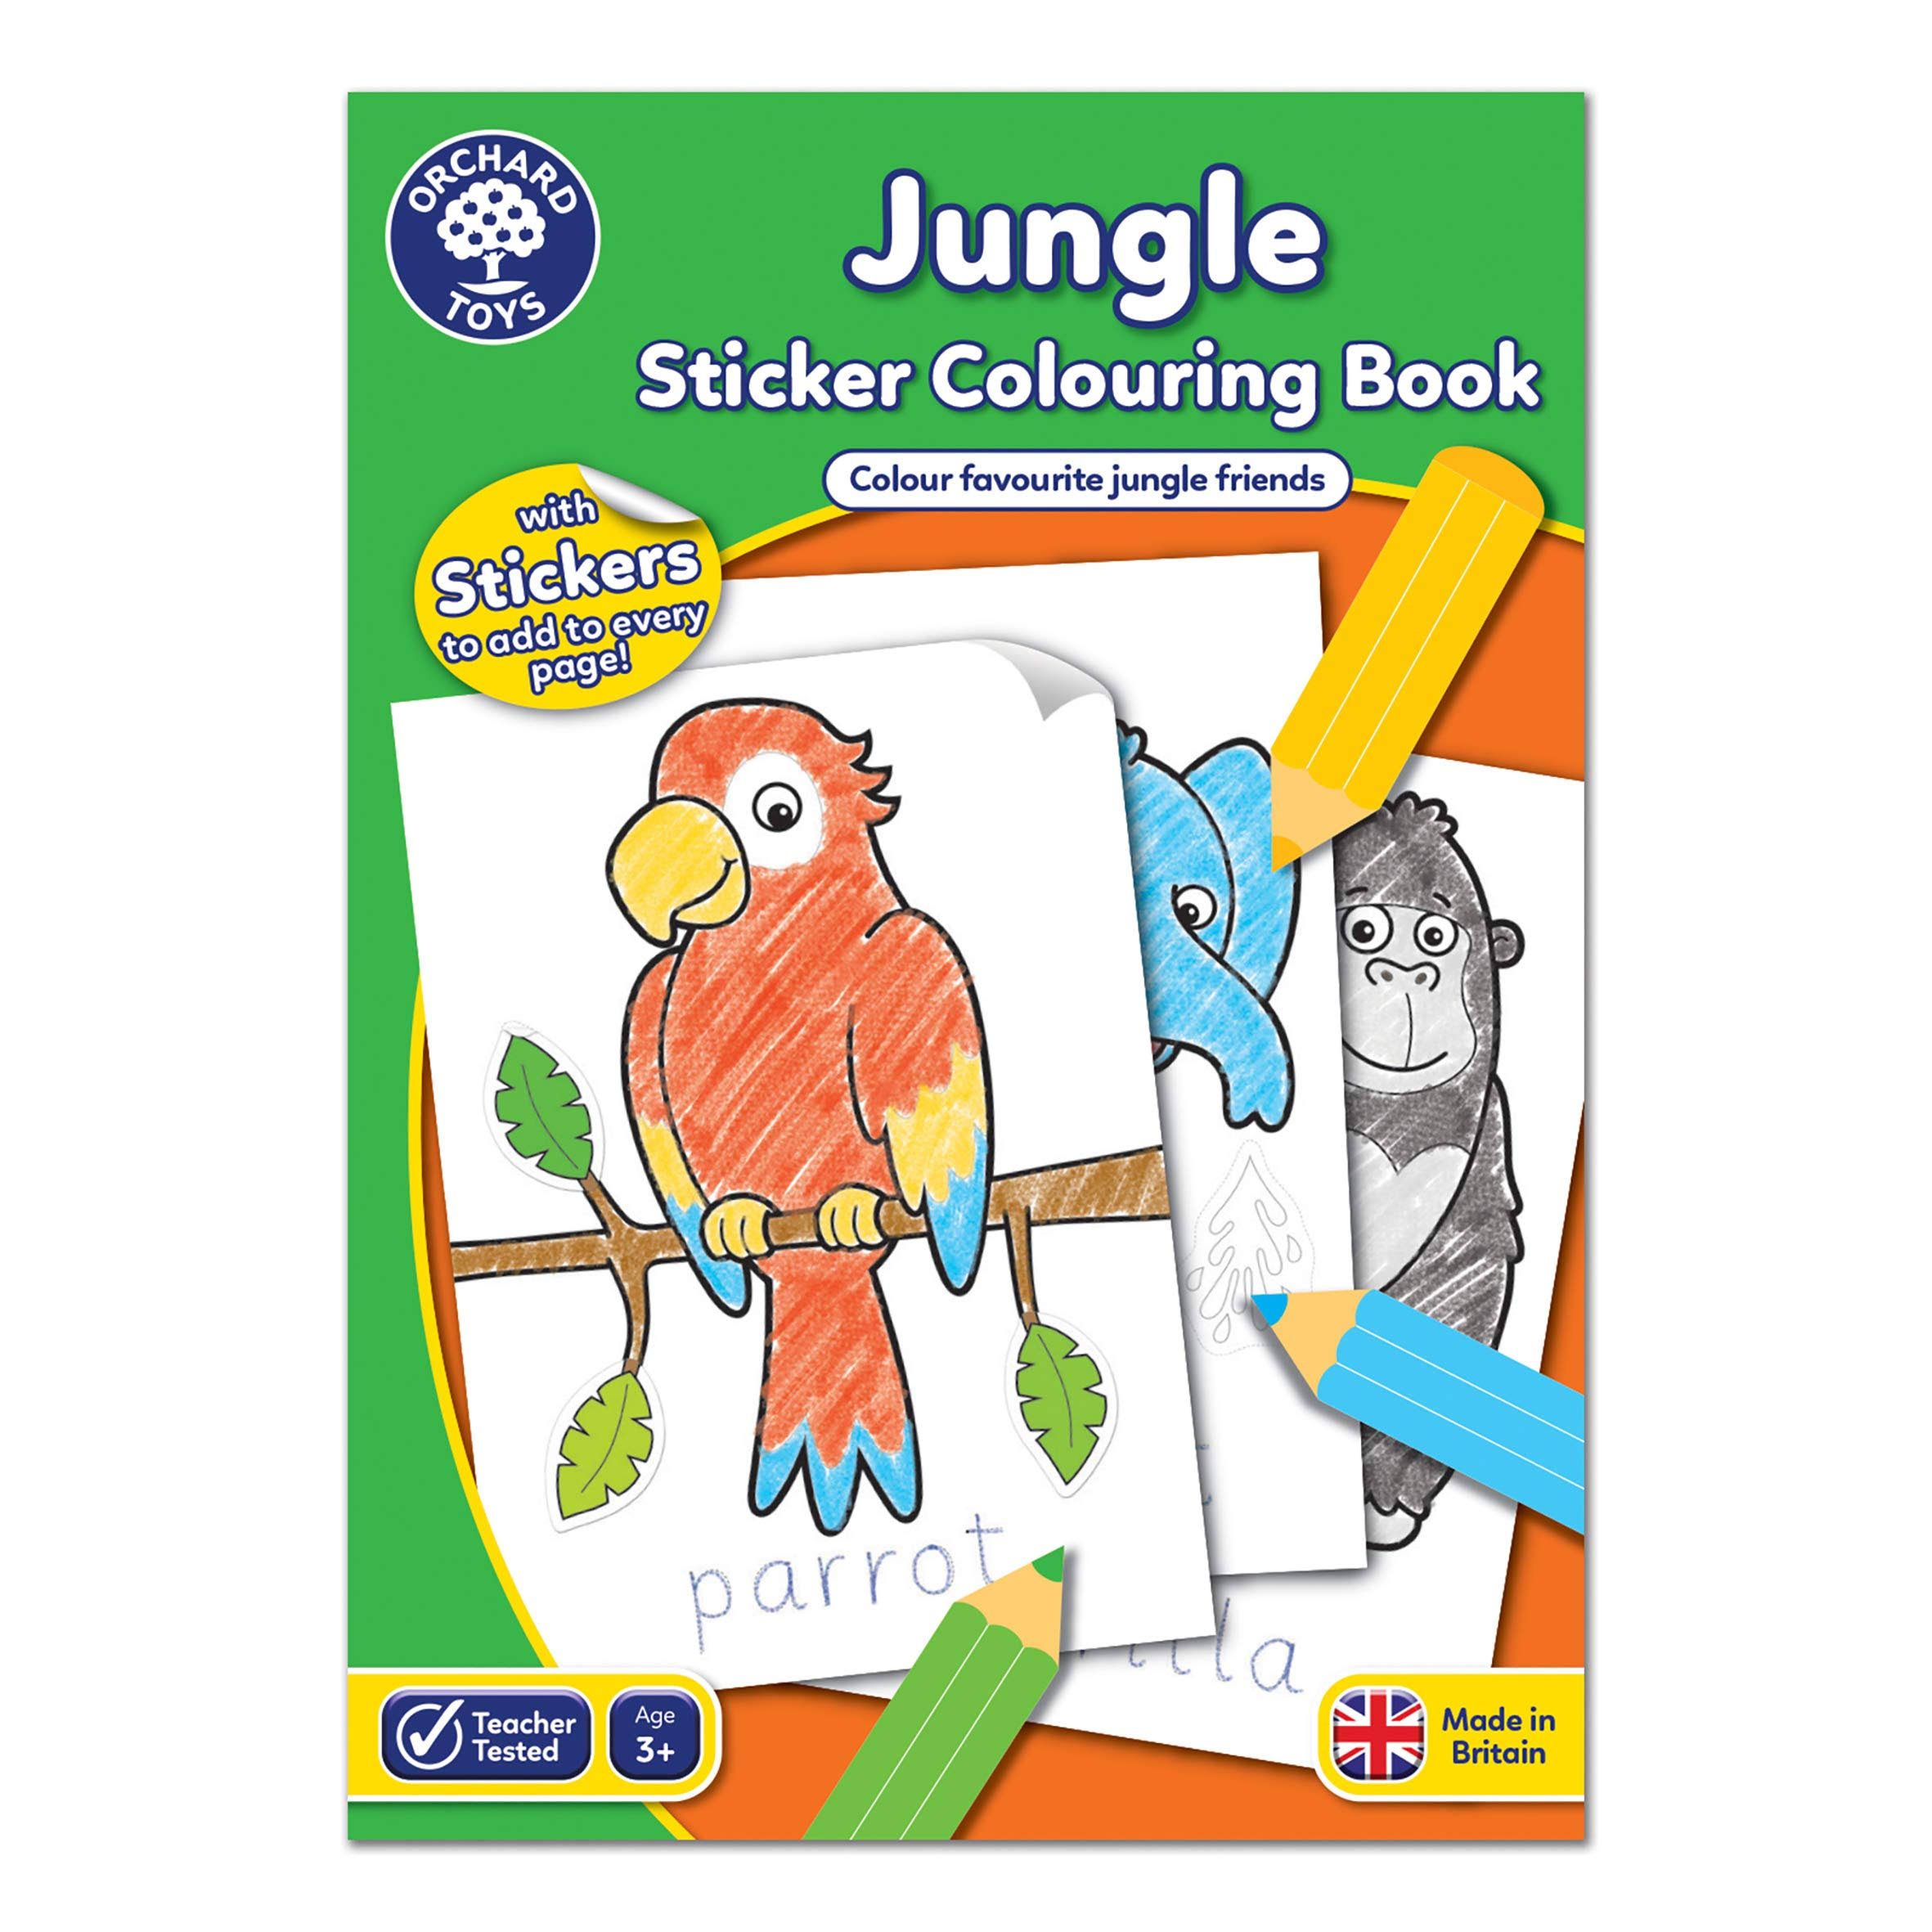 Orchard Toys Jungle Sticker Colouring Book